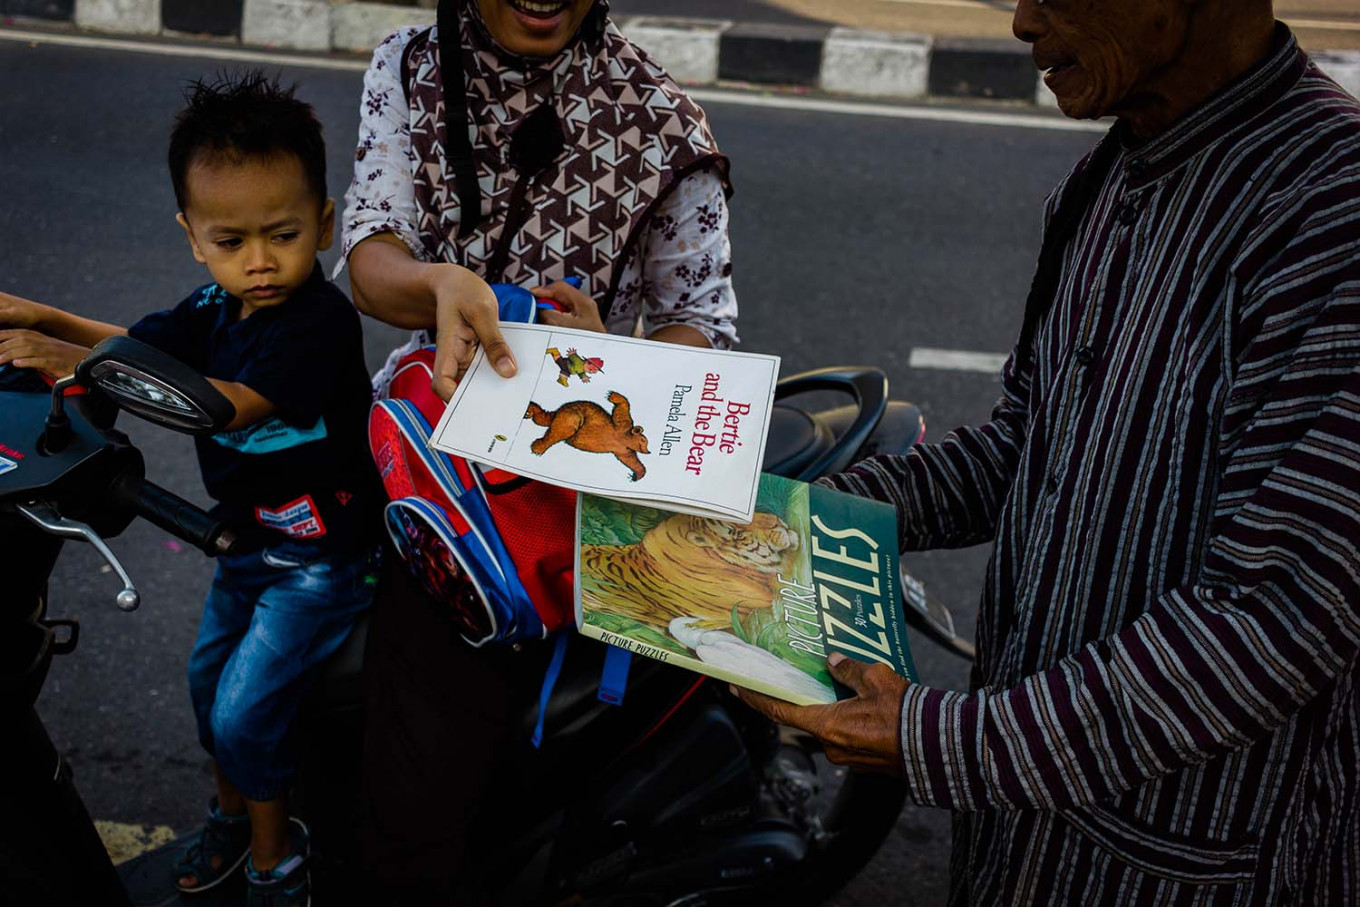 Rini and her son, Devan, return a picture book they borrowed from Sutopo's Becak Pustaka. JP/Anggertimur Lanang Tinarbuko